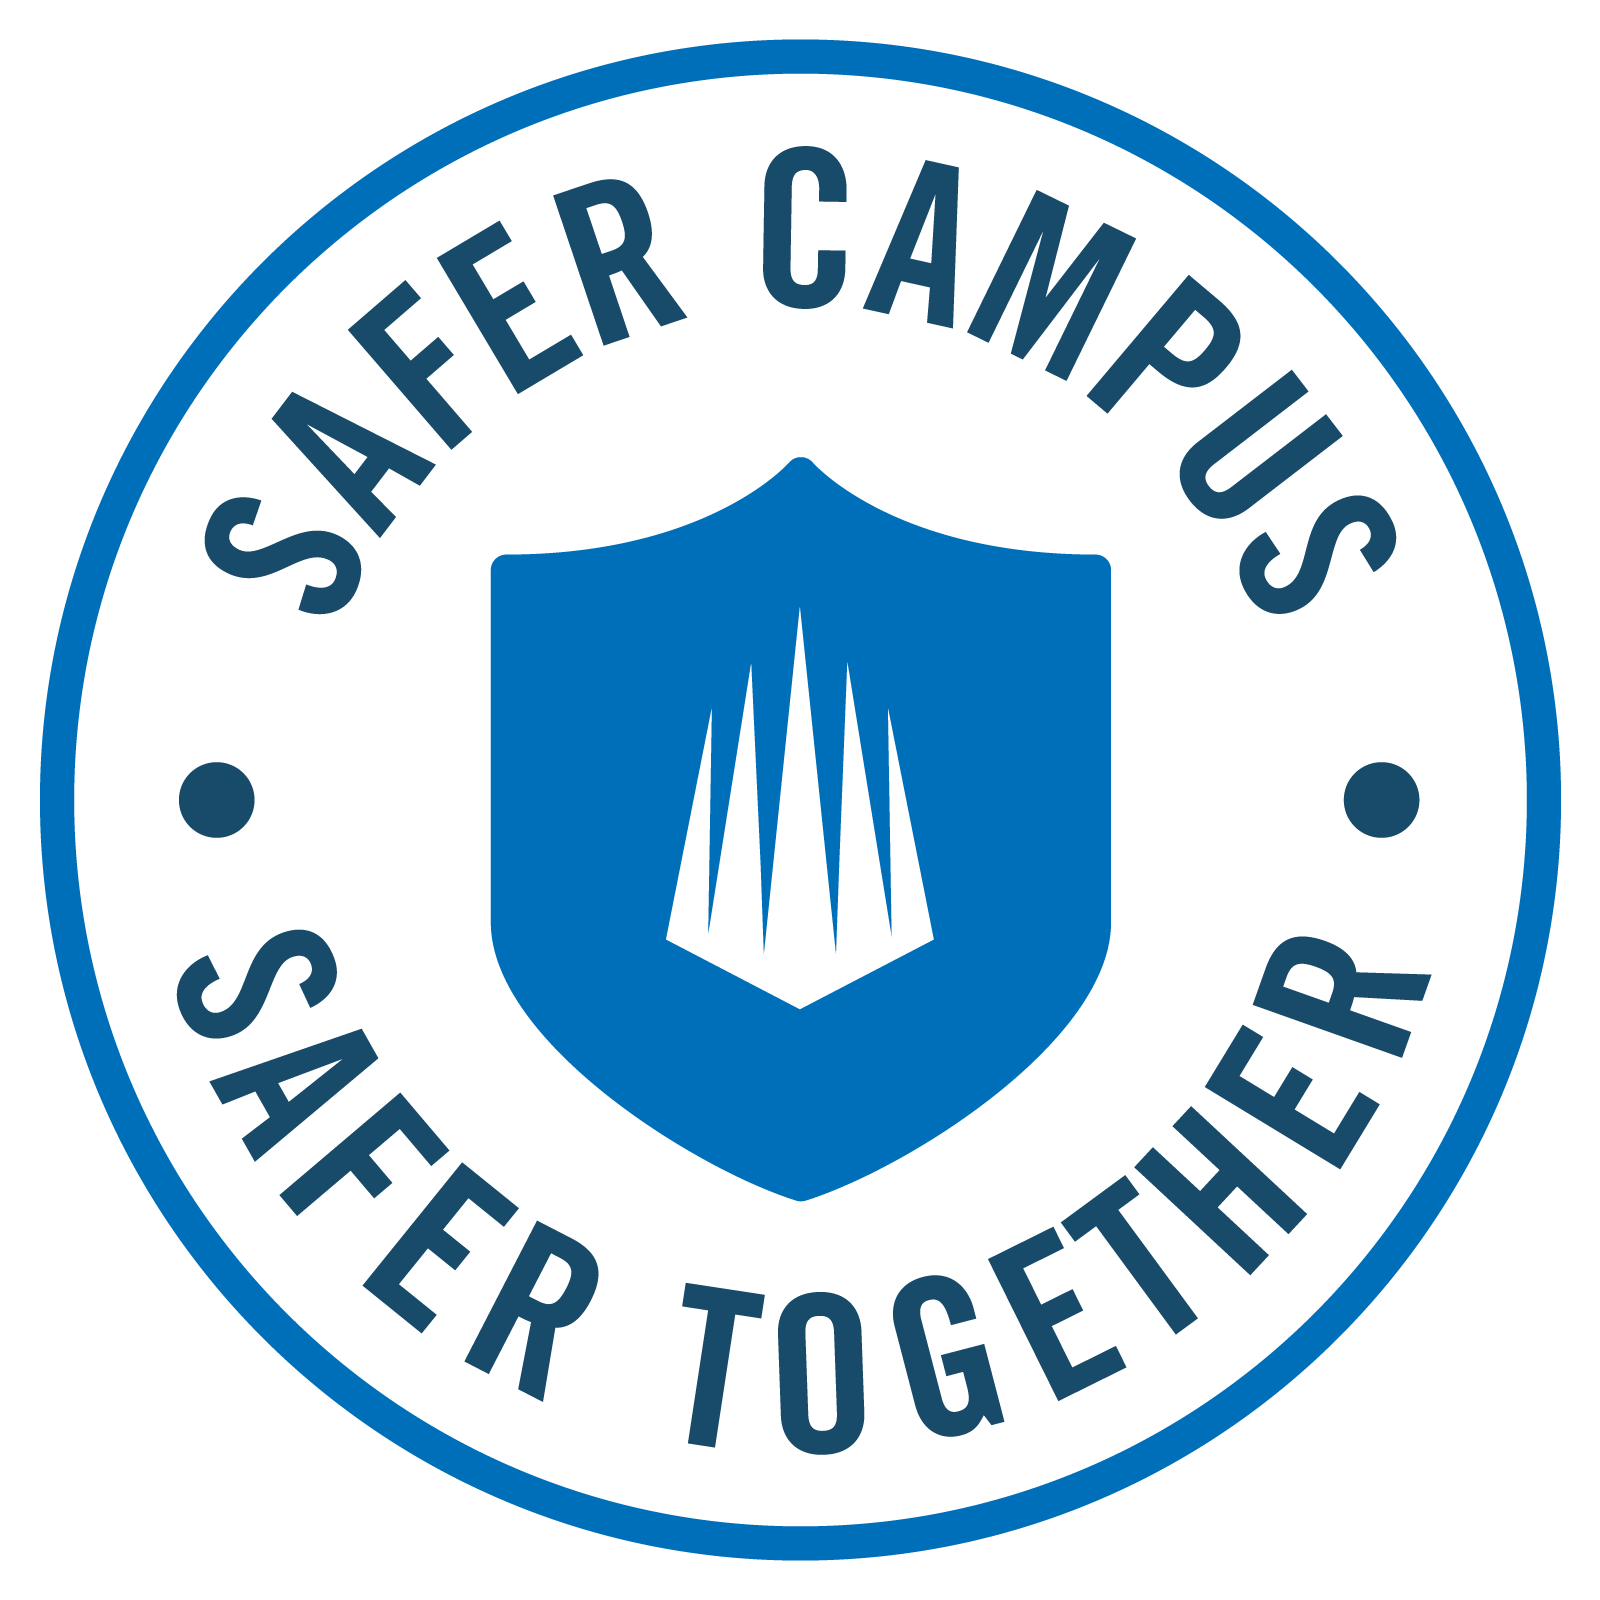 Safer Campus, Safer Together